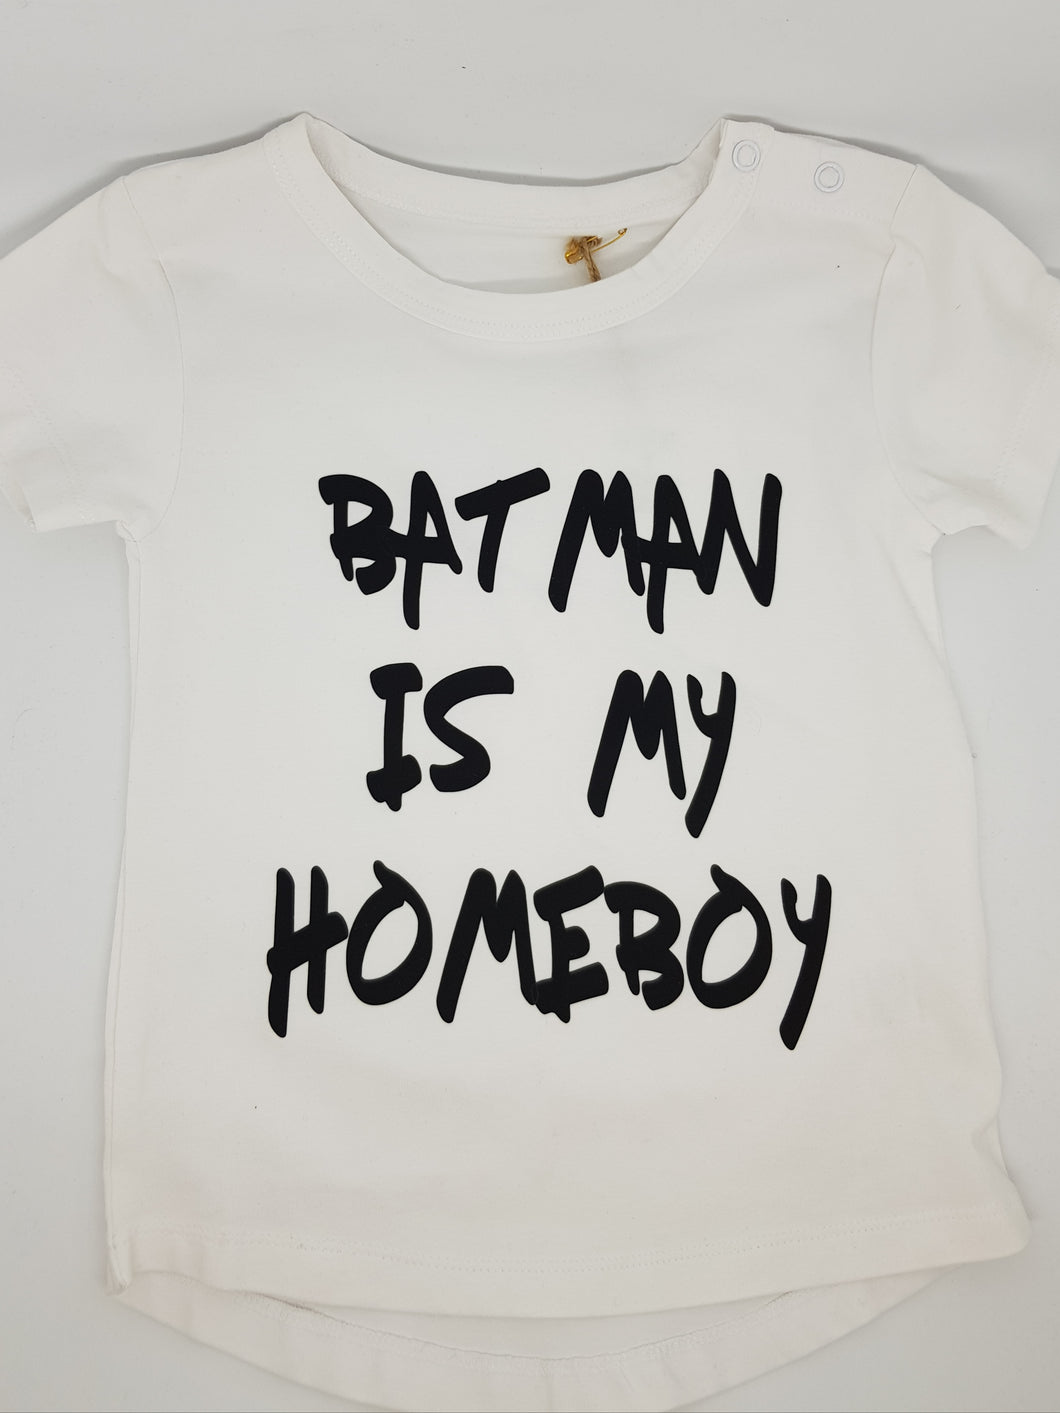 Boy's Size 1 Top - Batman Is My Homeboy